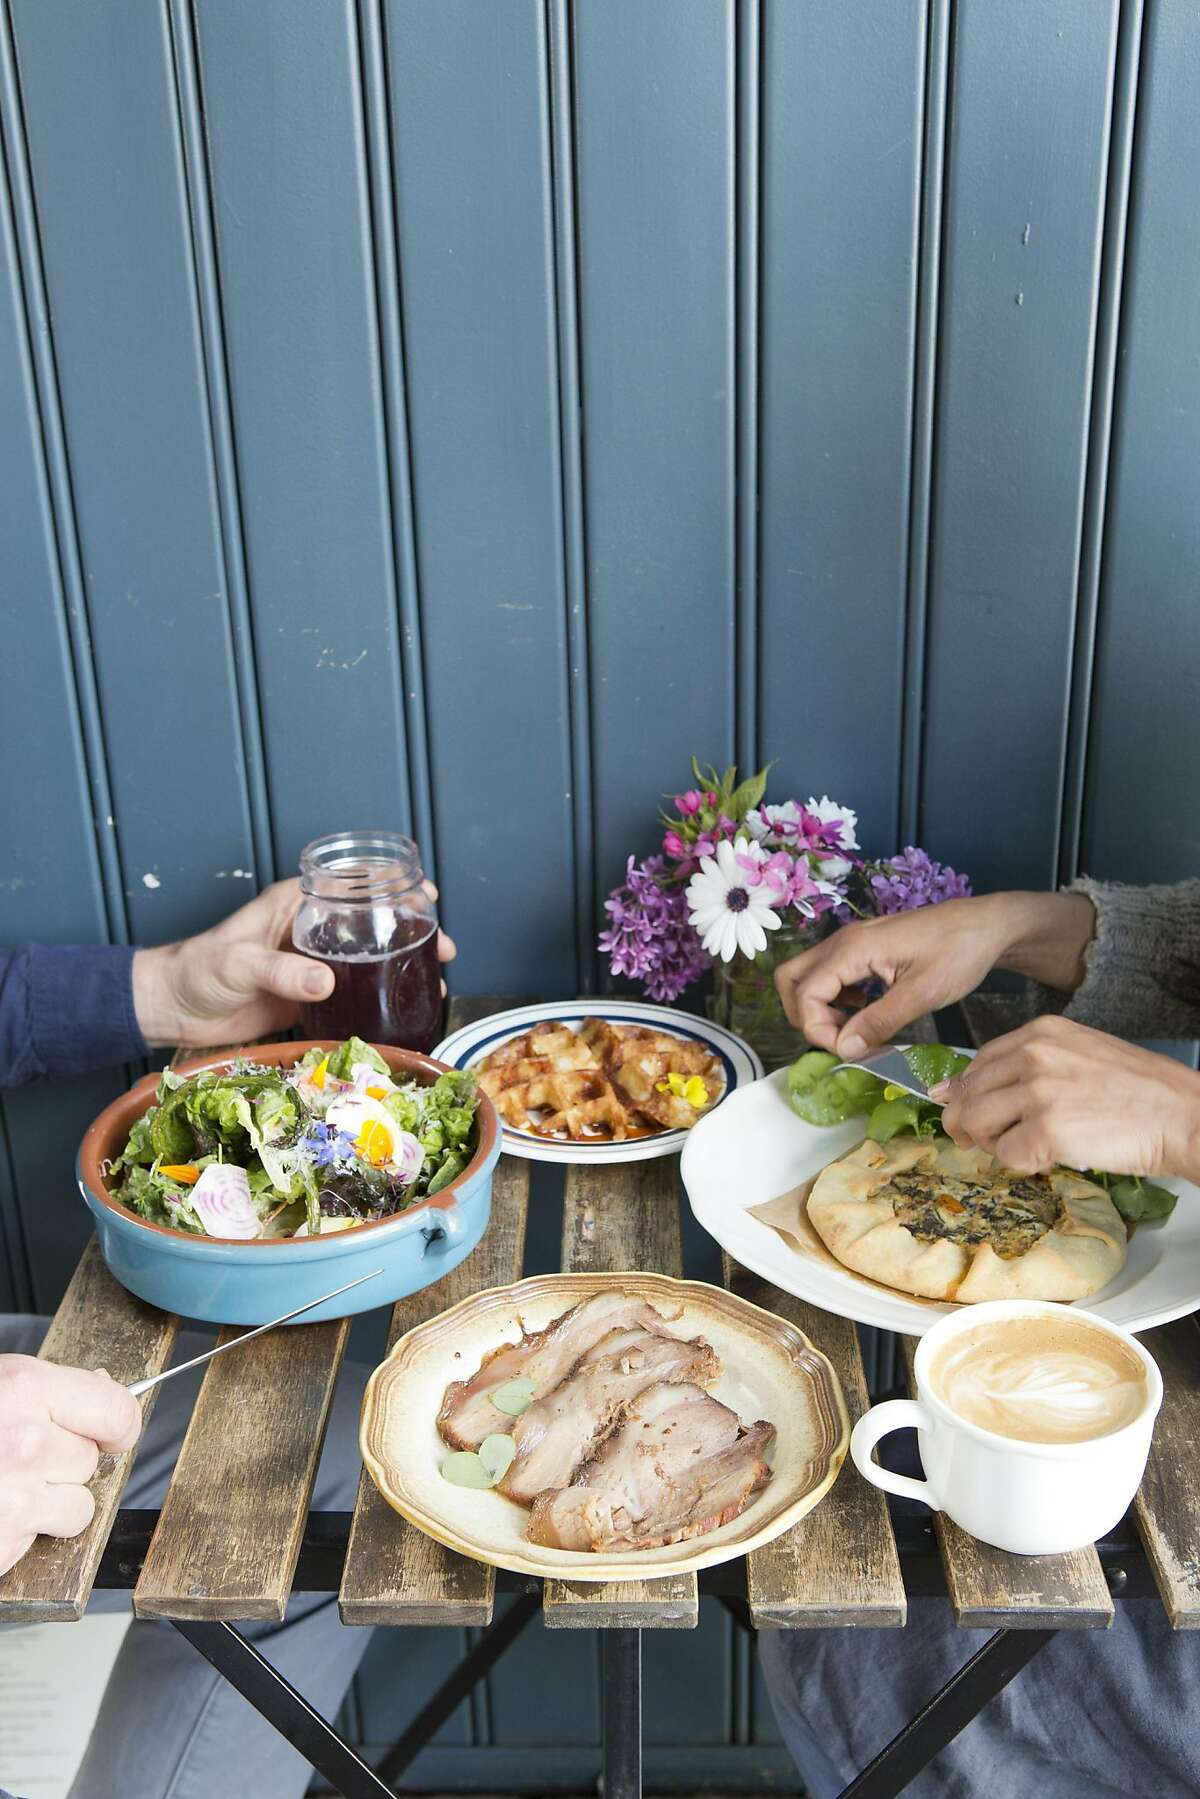 The Naked Pig in Santa Rosa is a charming farm-to-table restaurant and cafe in the middle of a parking lot. Menu is focused on harvested and foraged foods.